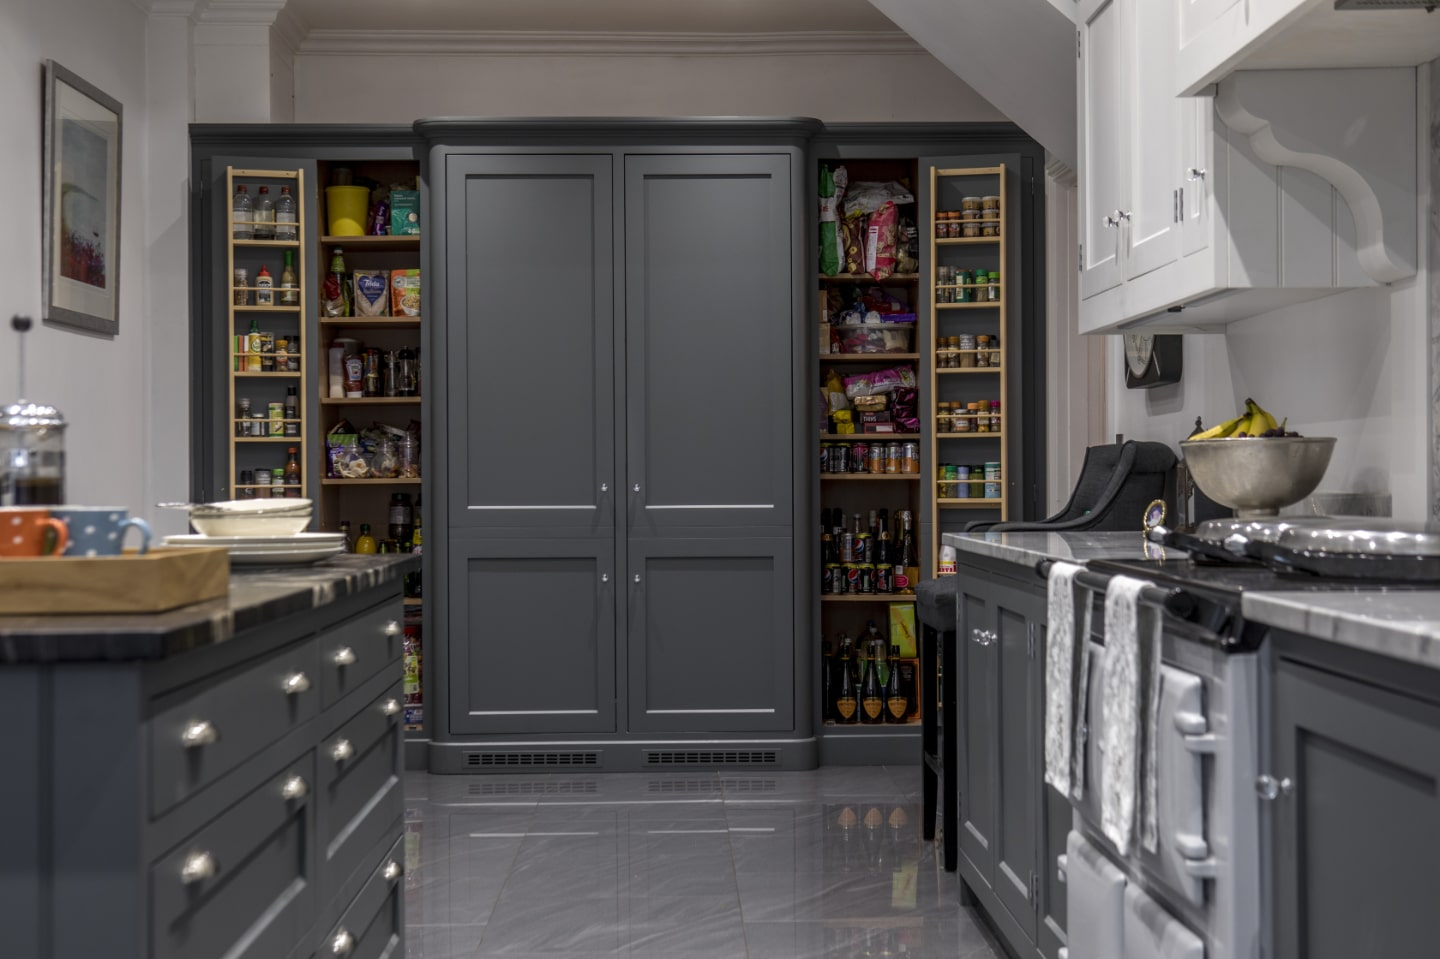 A large pantry with the doors open revealing the food items inside.